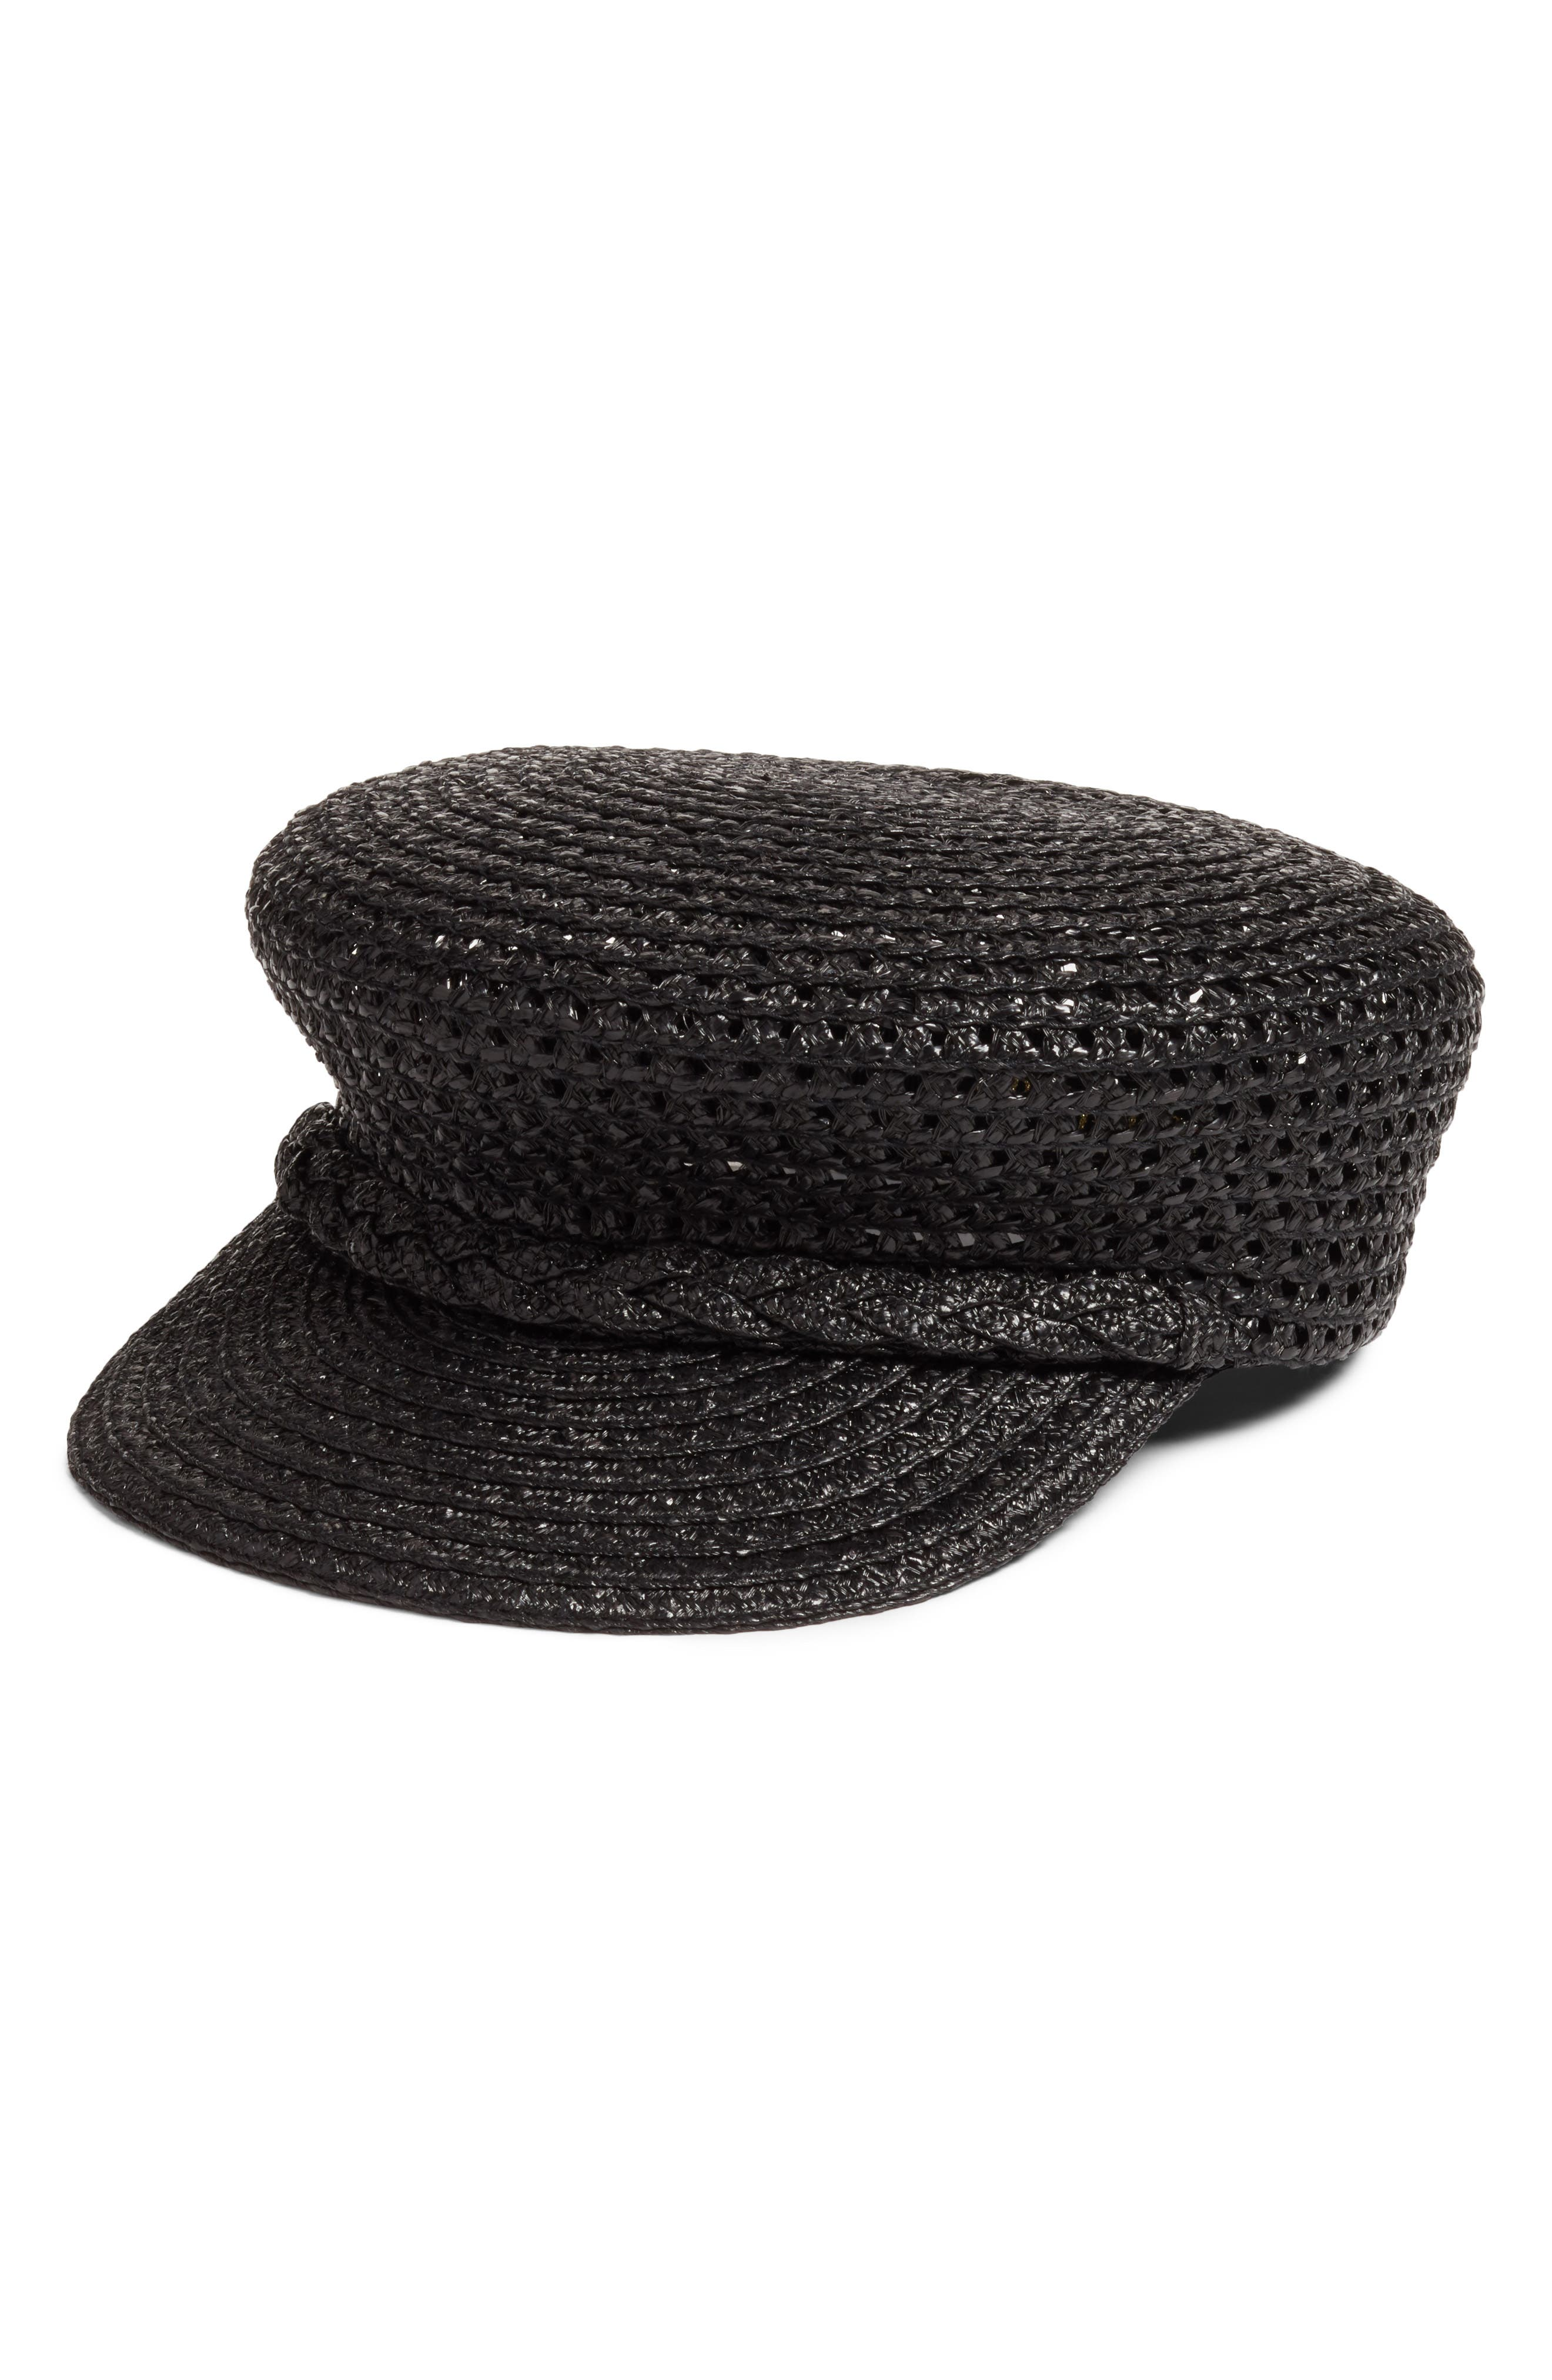 CAPITAN SQUISHEE CAP - BLACK